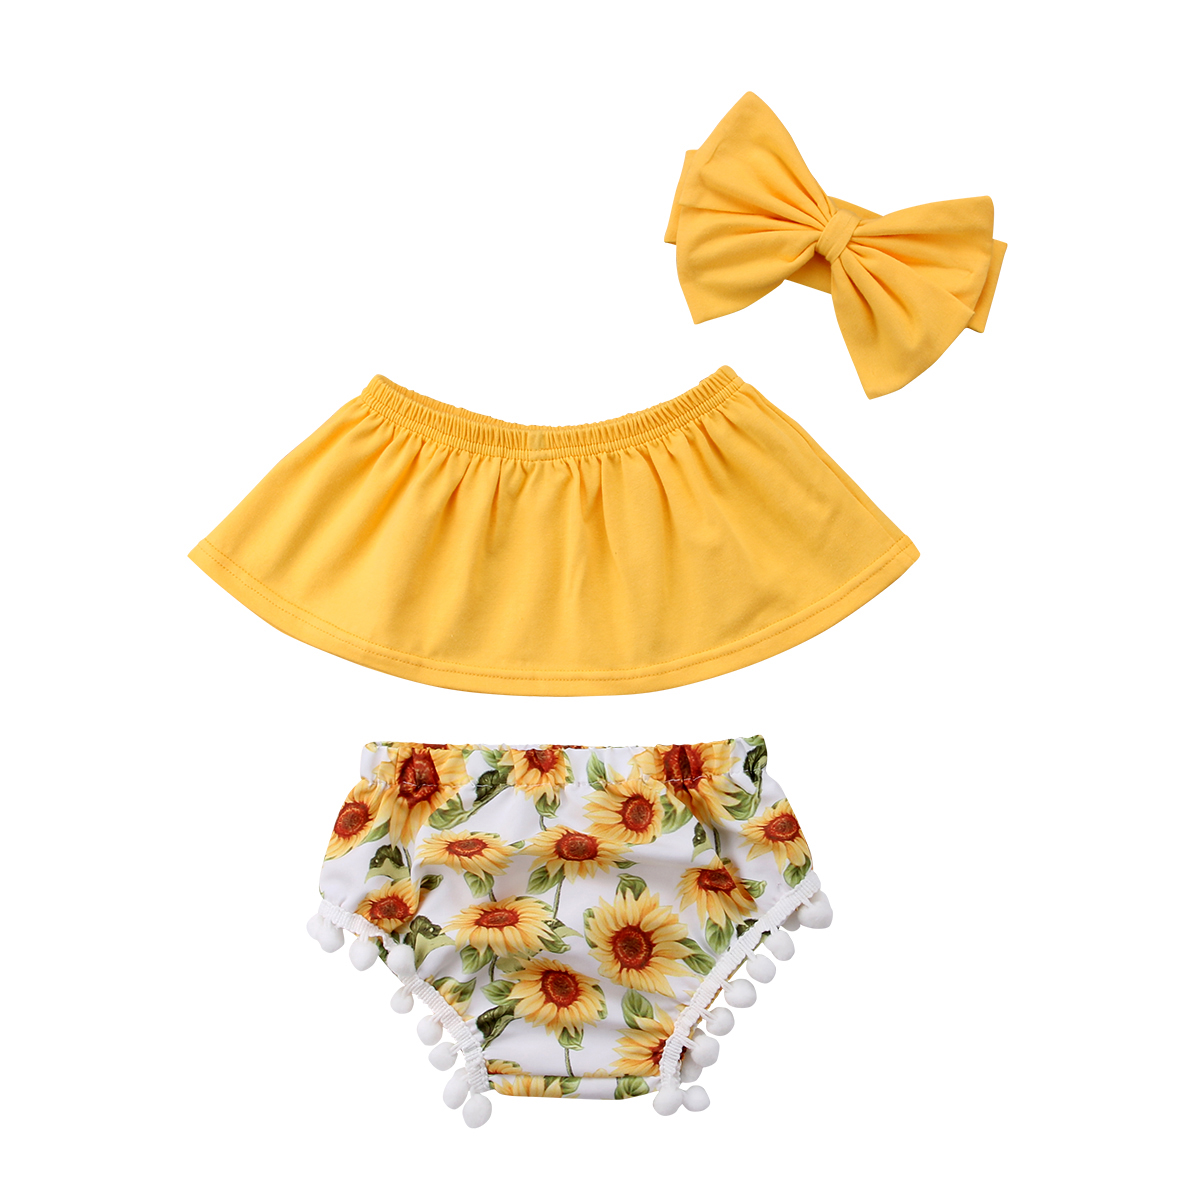 Summer Toddler Baby Girls Clothes Sets Off Shoulder Tops Shorts Flower Headband 3pcs Casual Cotton Girl 0-24M цена 2017